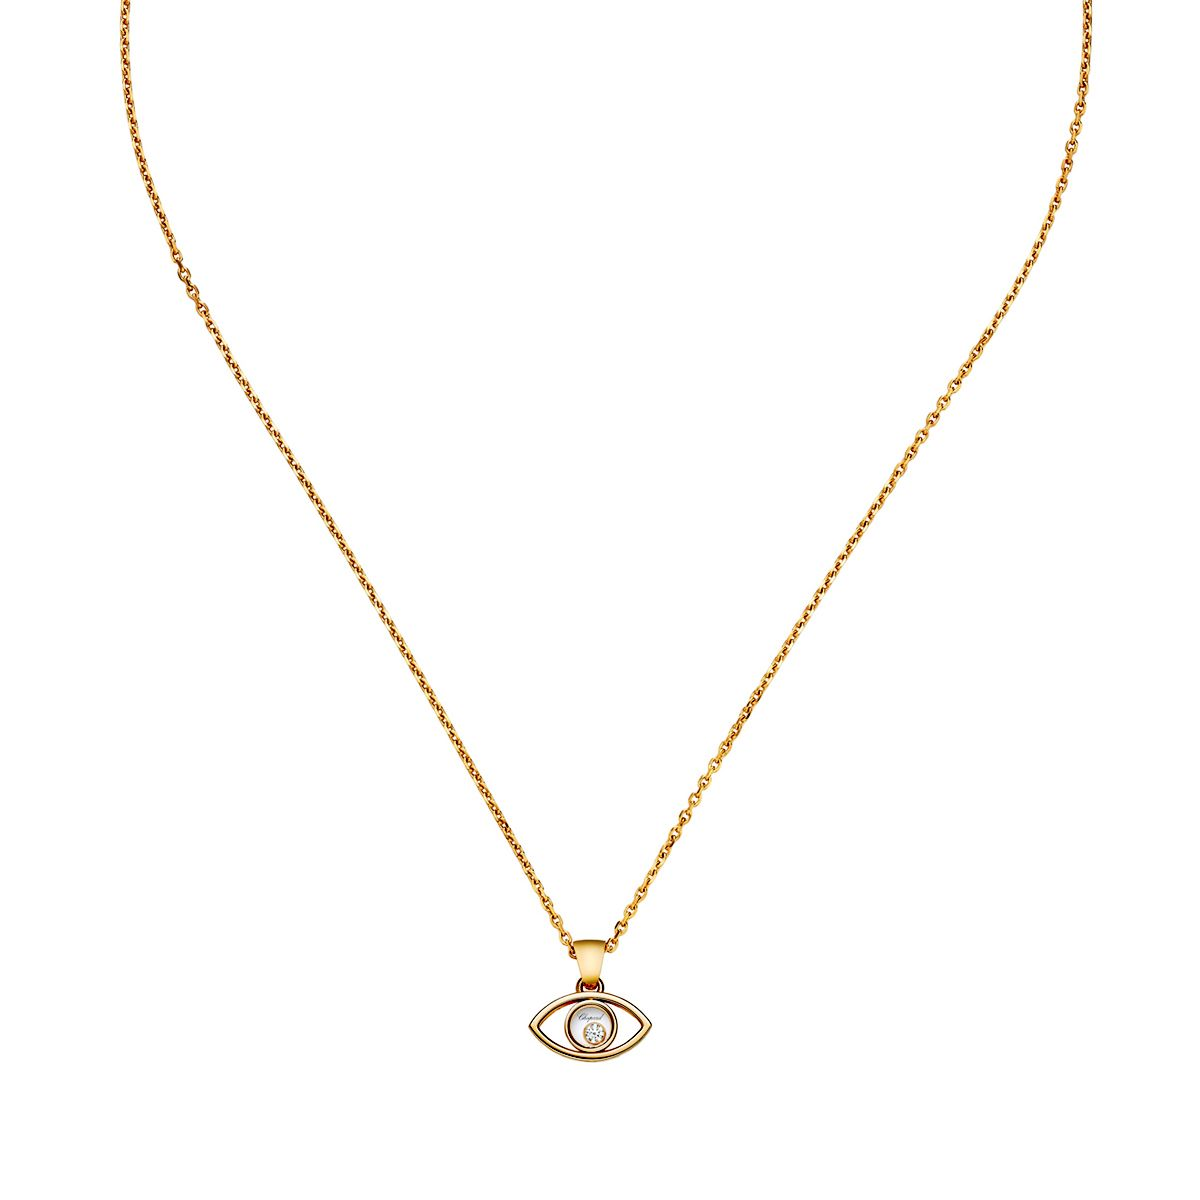 3c60a539f6478 Chopard - Yellow Gold Happy Diamonds Icons Pendant Necklace - at - London  Jewelers